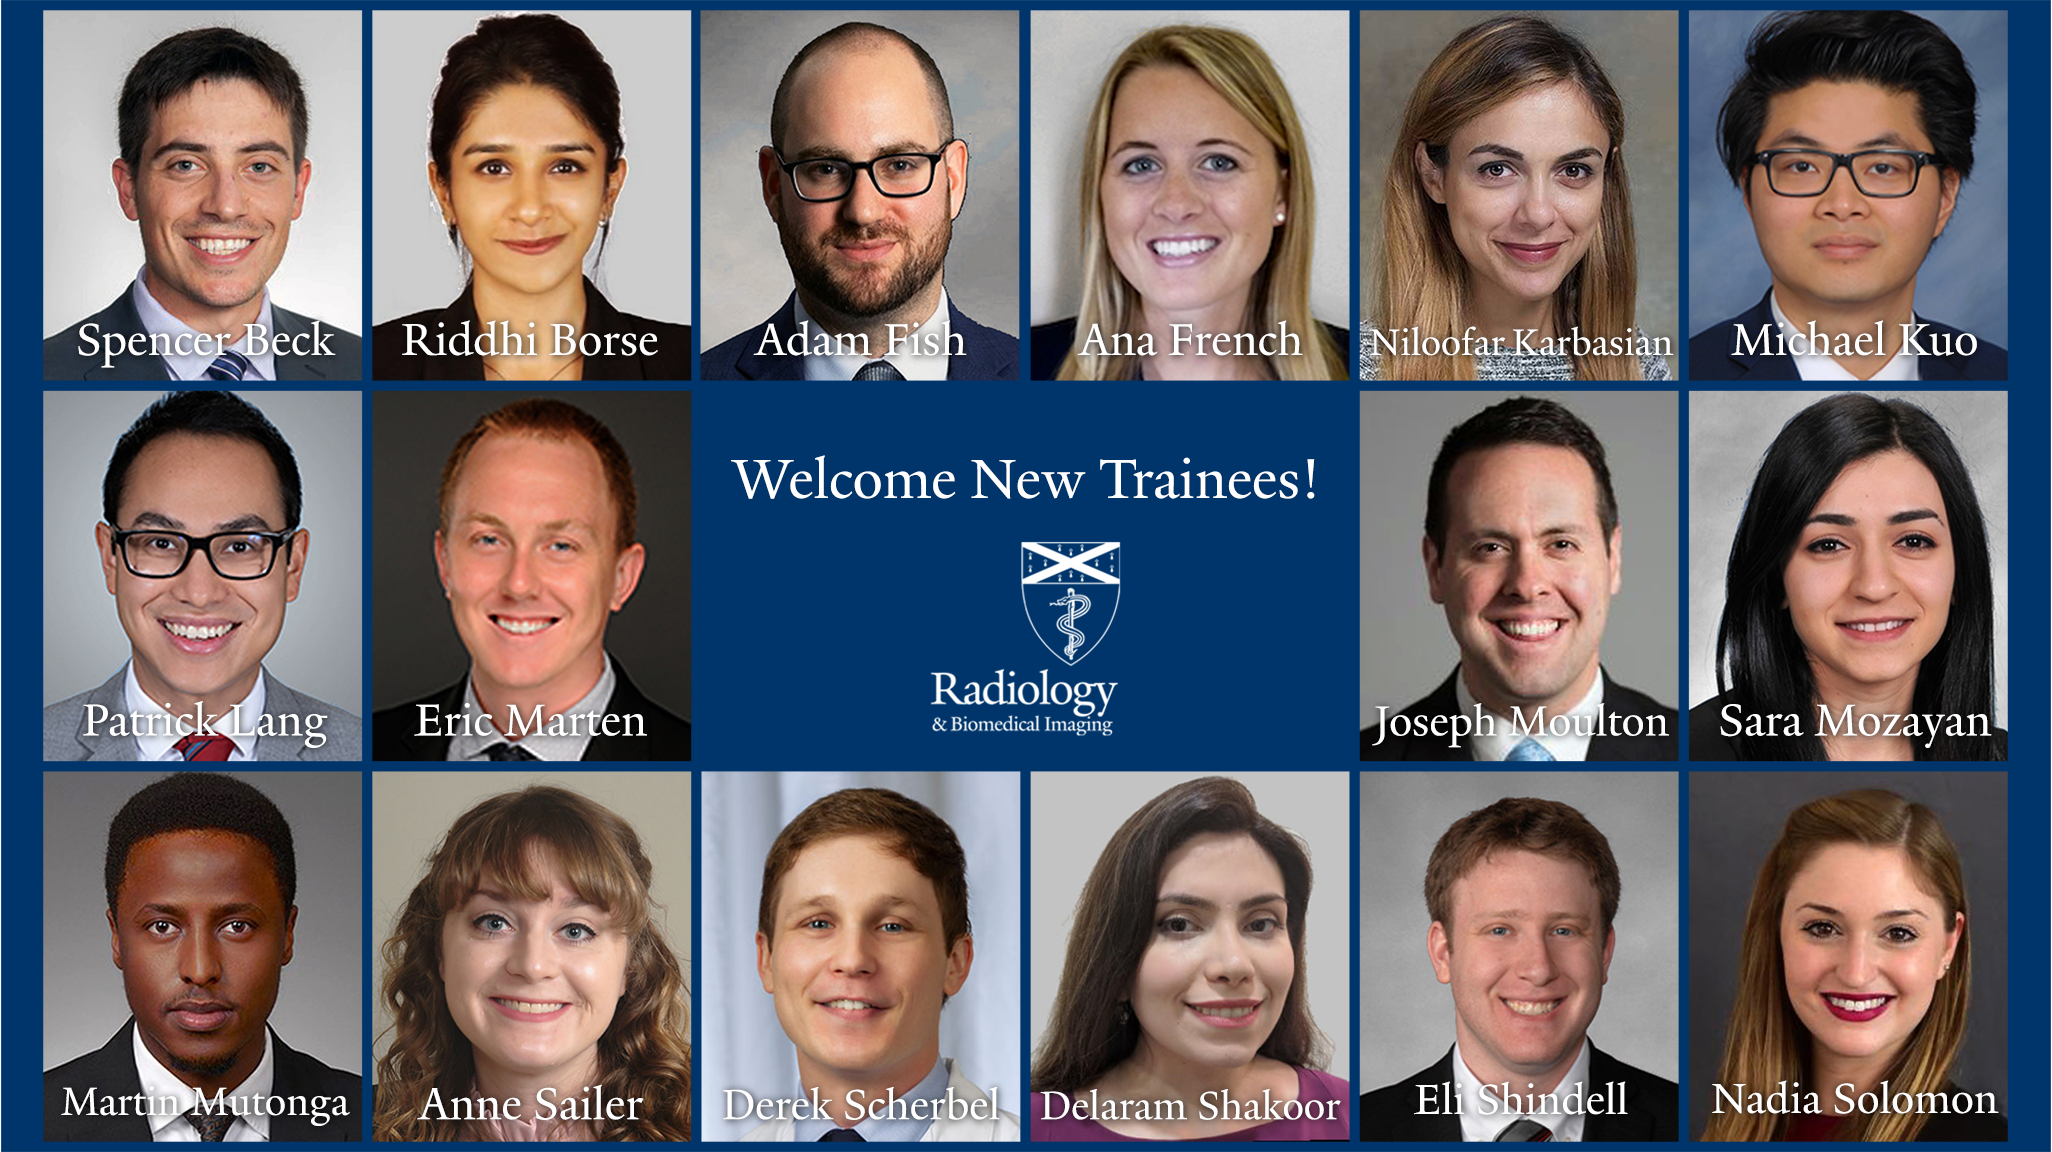 Yale Radiology's 2020 first-year class